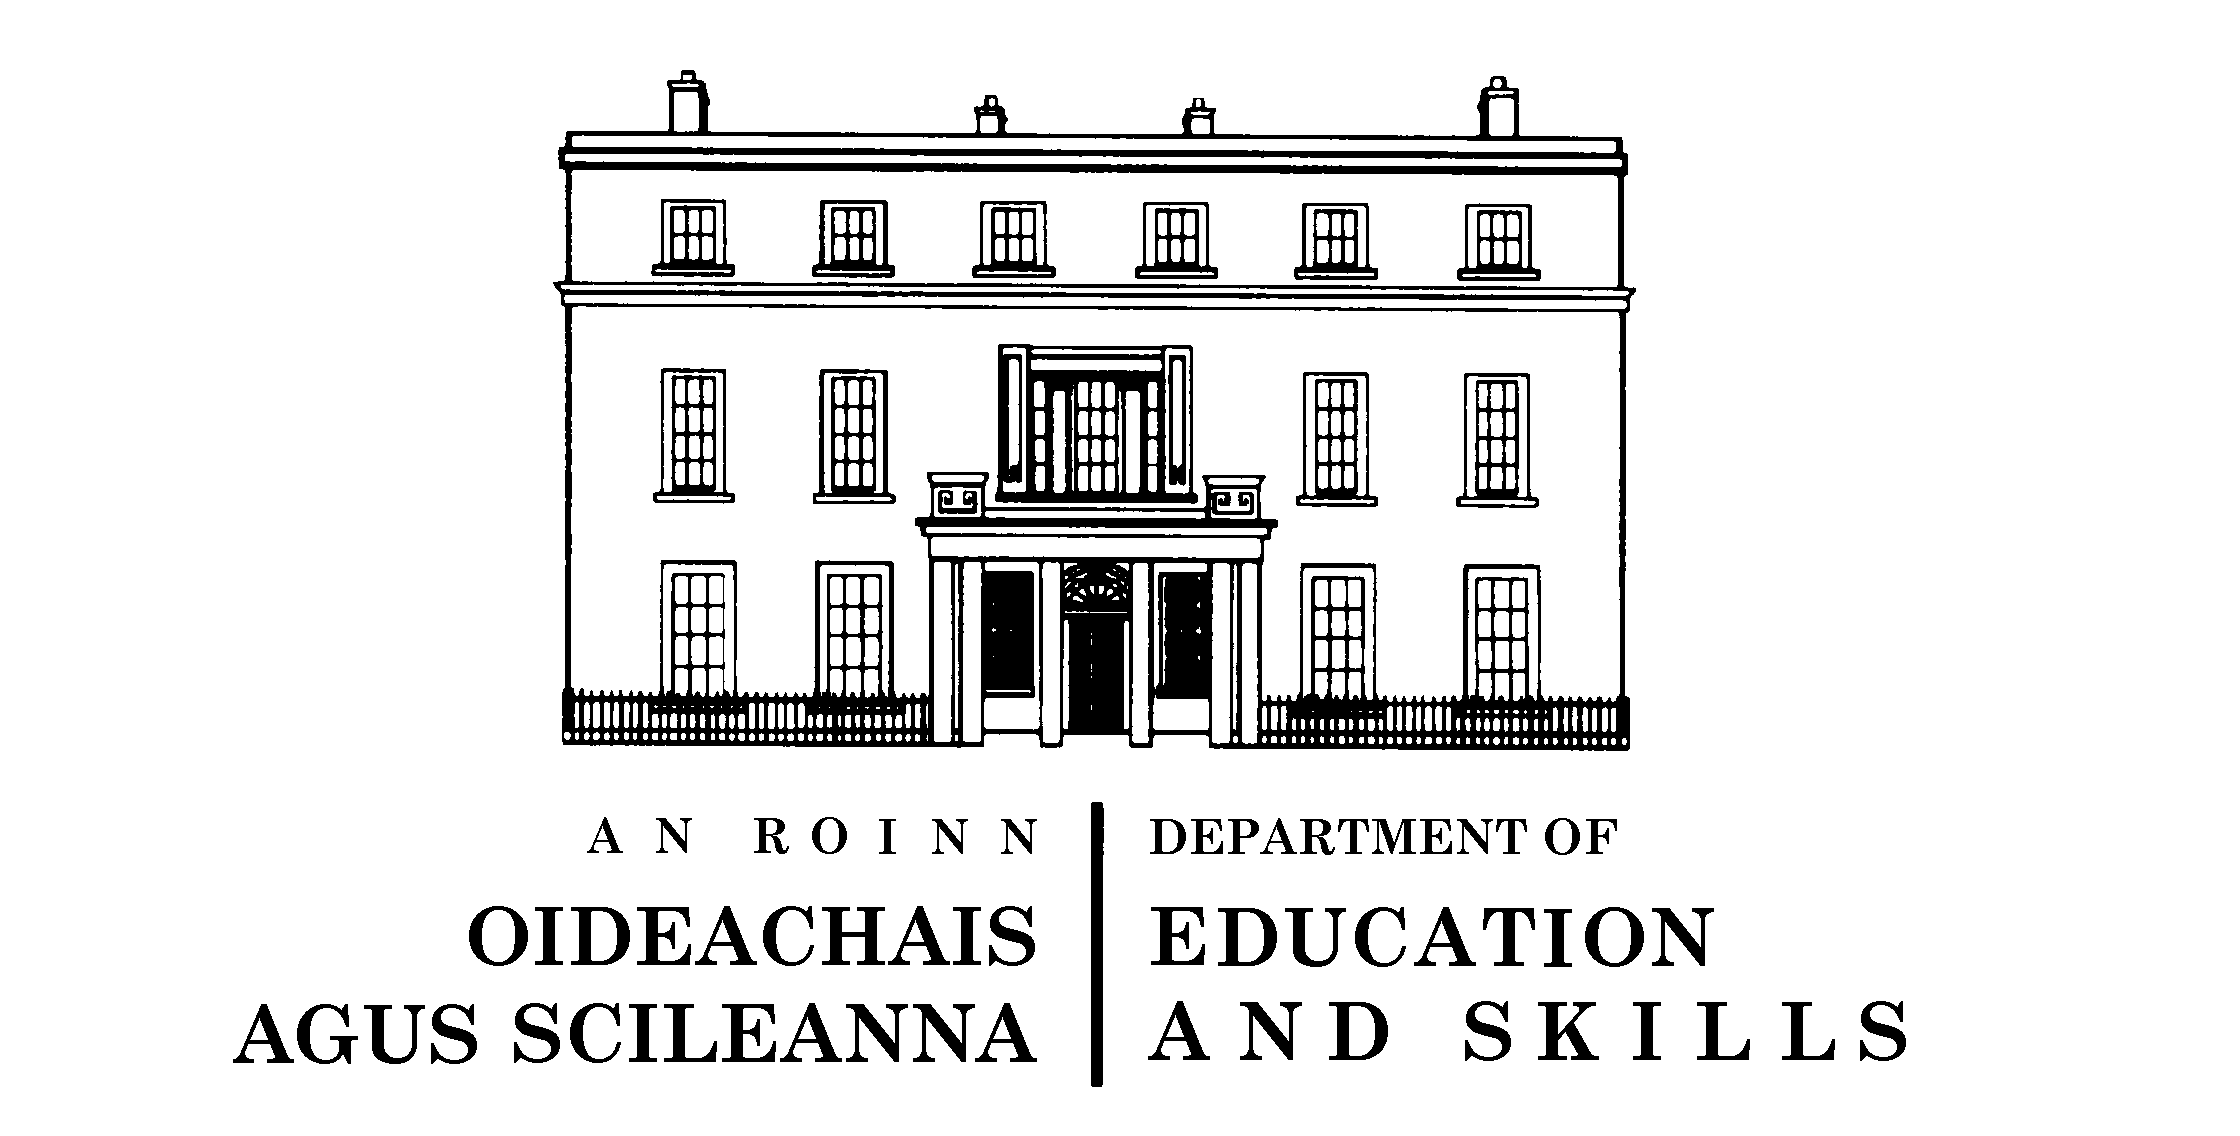 department-of-education-and-skills.png